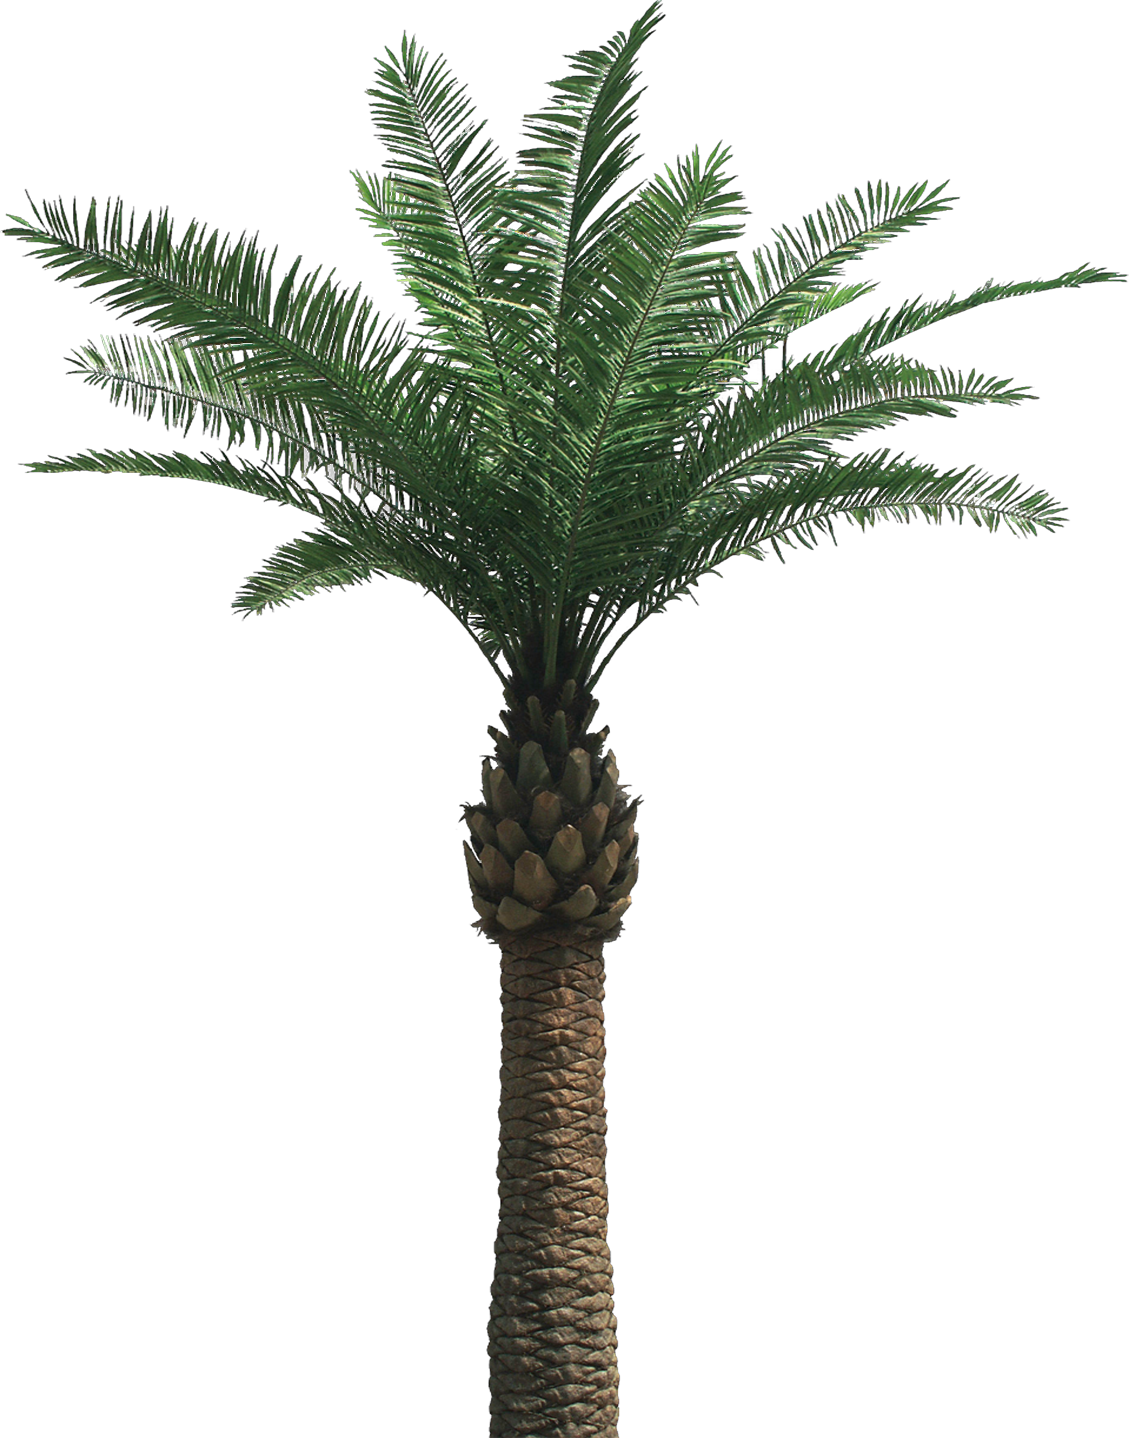 Transparent Hd Png Background Palm Tree image #31884